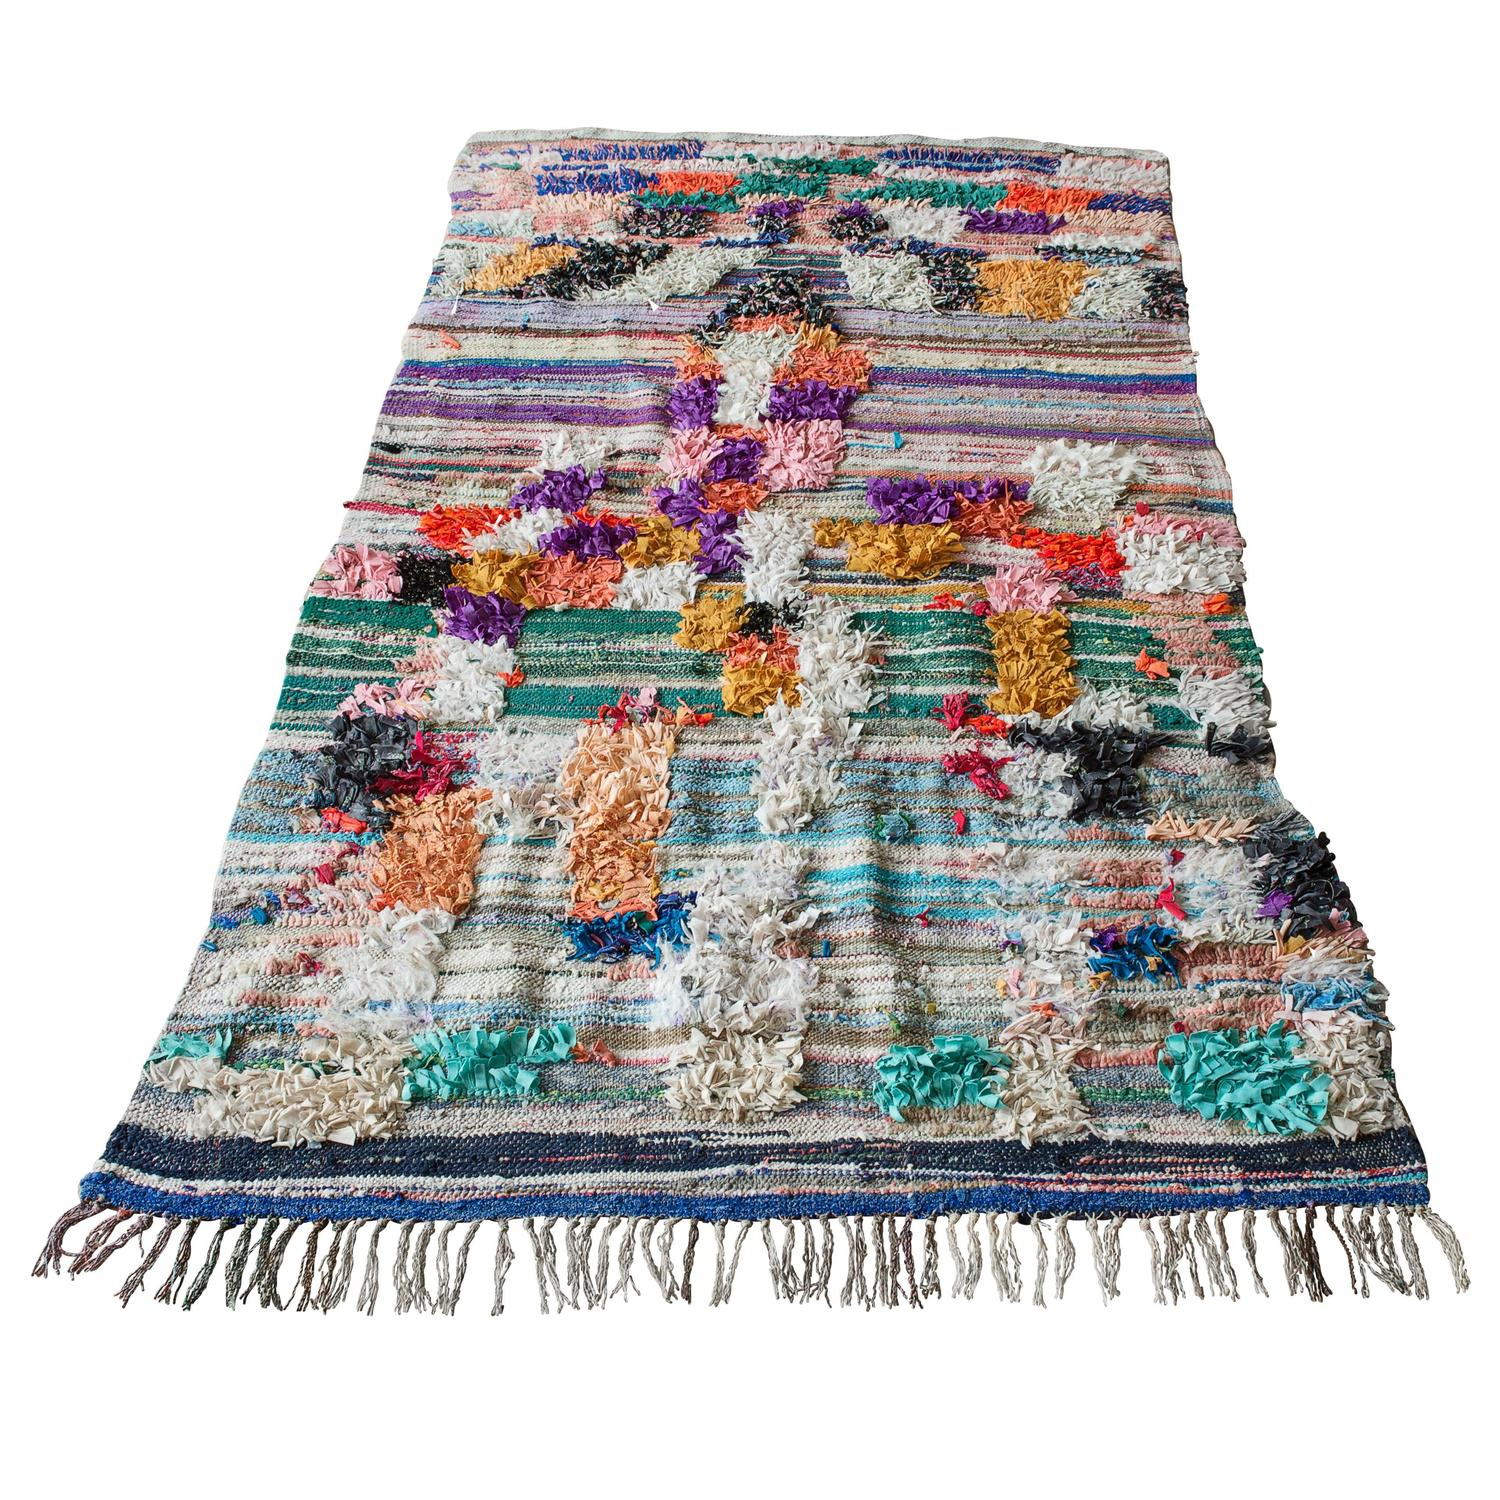 Moroccan Boucherouite Rug For Sale At 1stdibs: Moroccan Boucherouite Kilim Rug At 1stdibs